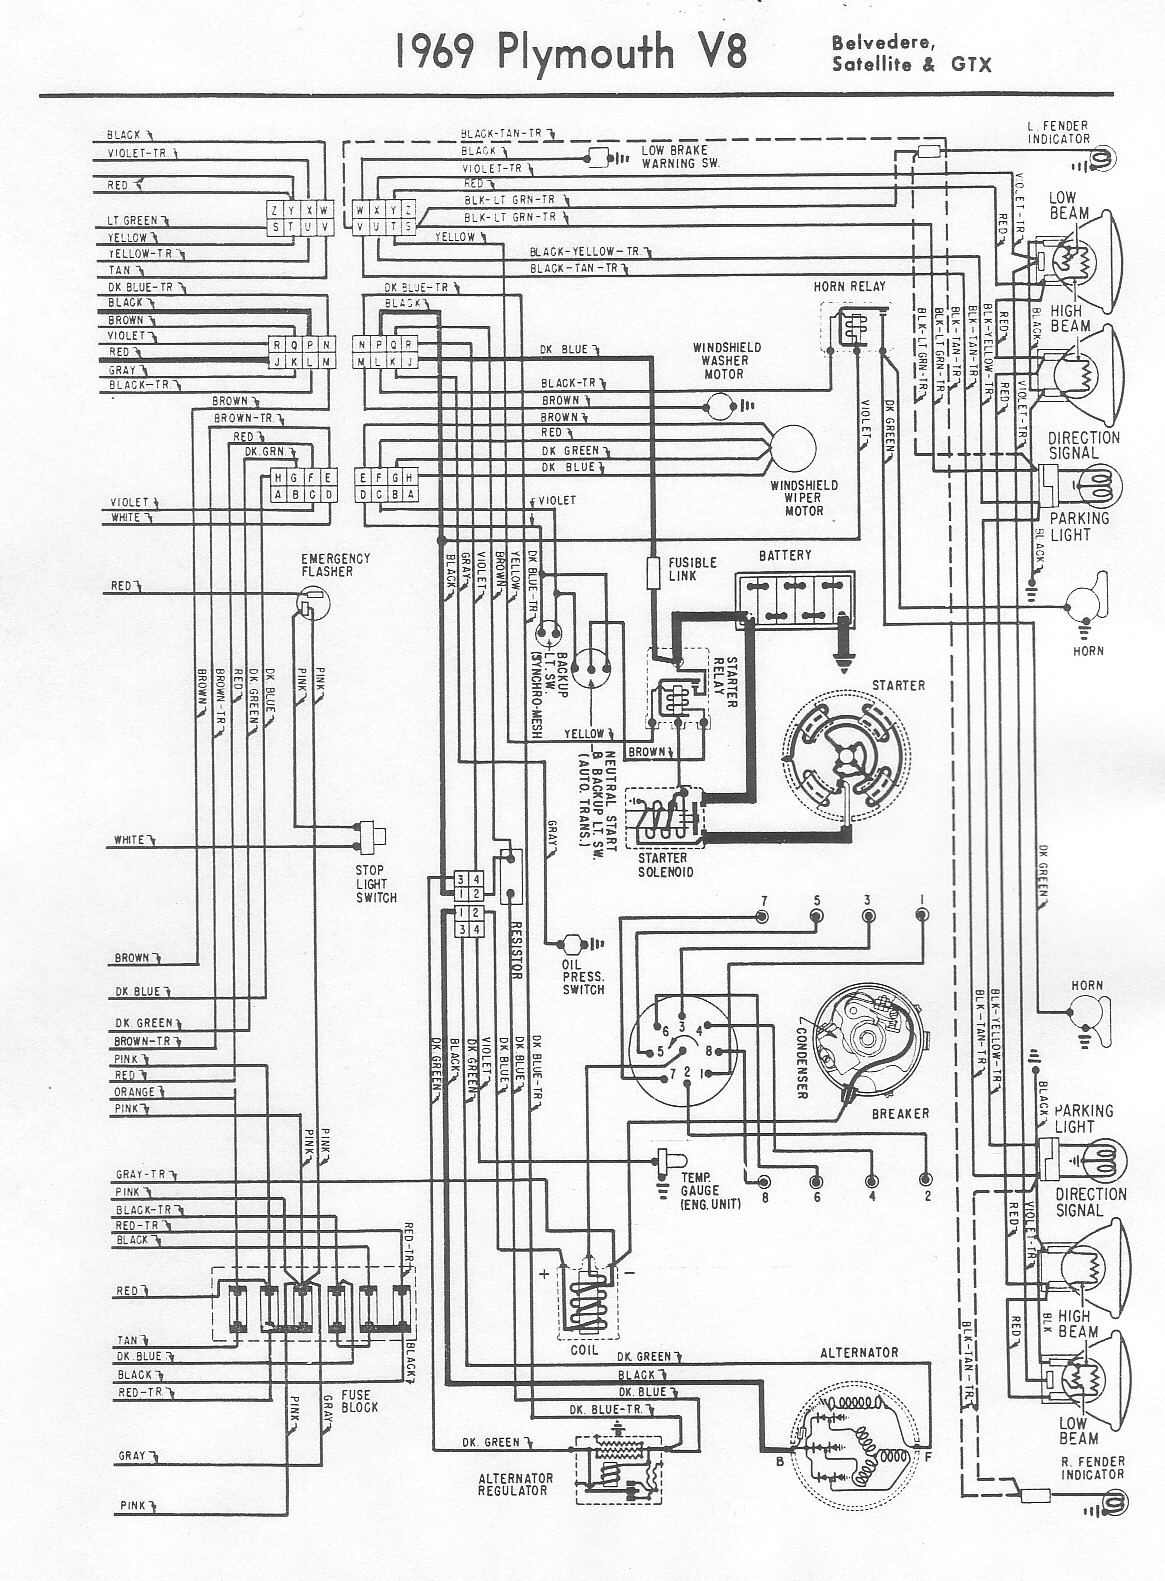 69BelvedereGTXSatelliteRoadRunnerB 1969 roadrunner wiring diagram 1969 plymouth road runner wiring wiring diagram for 1968 plymouth roadrunner at aneh.co